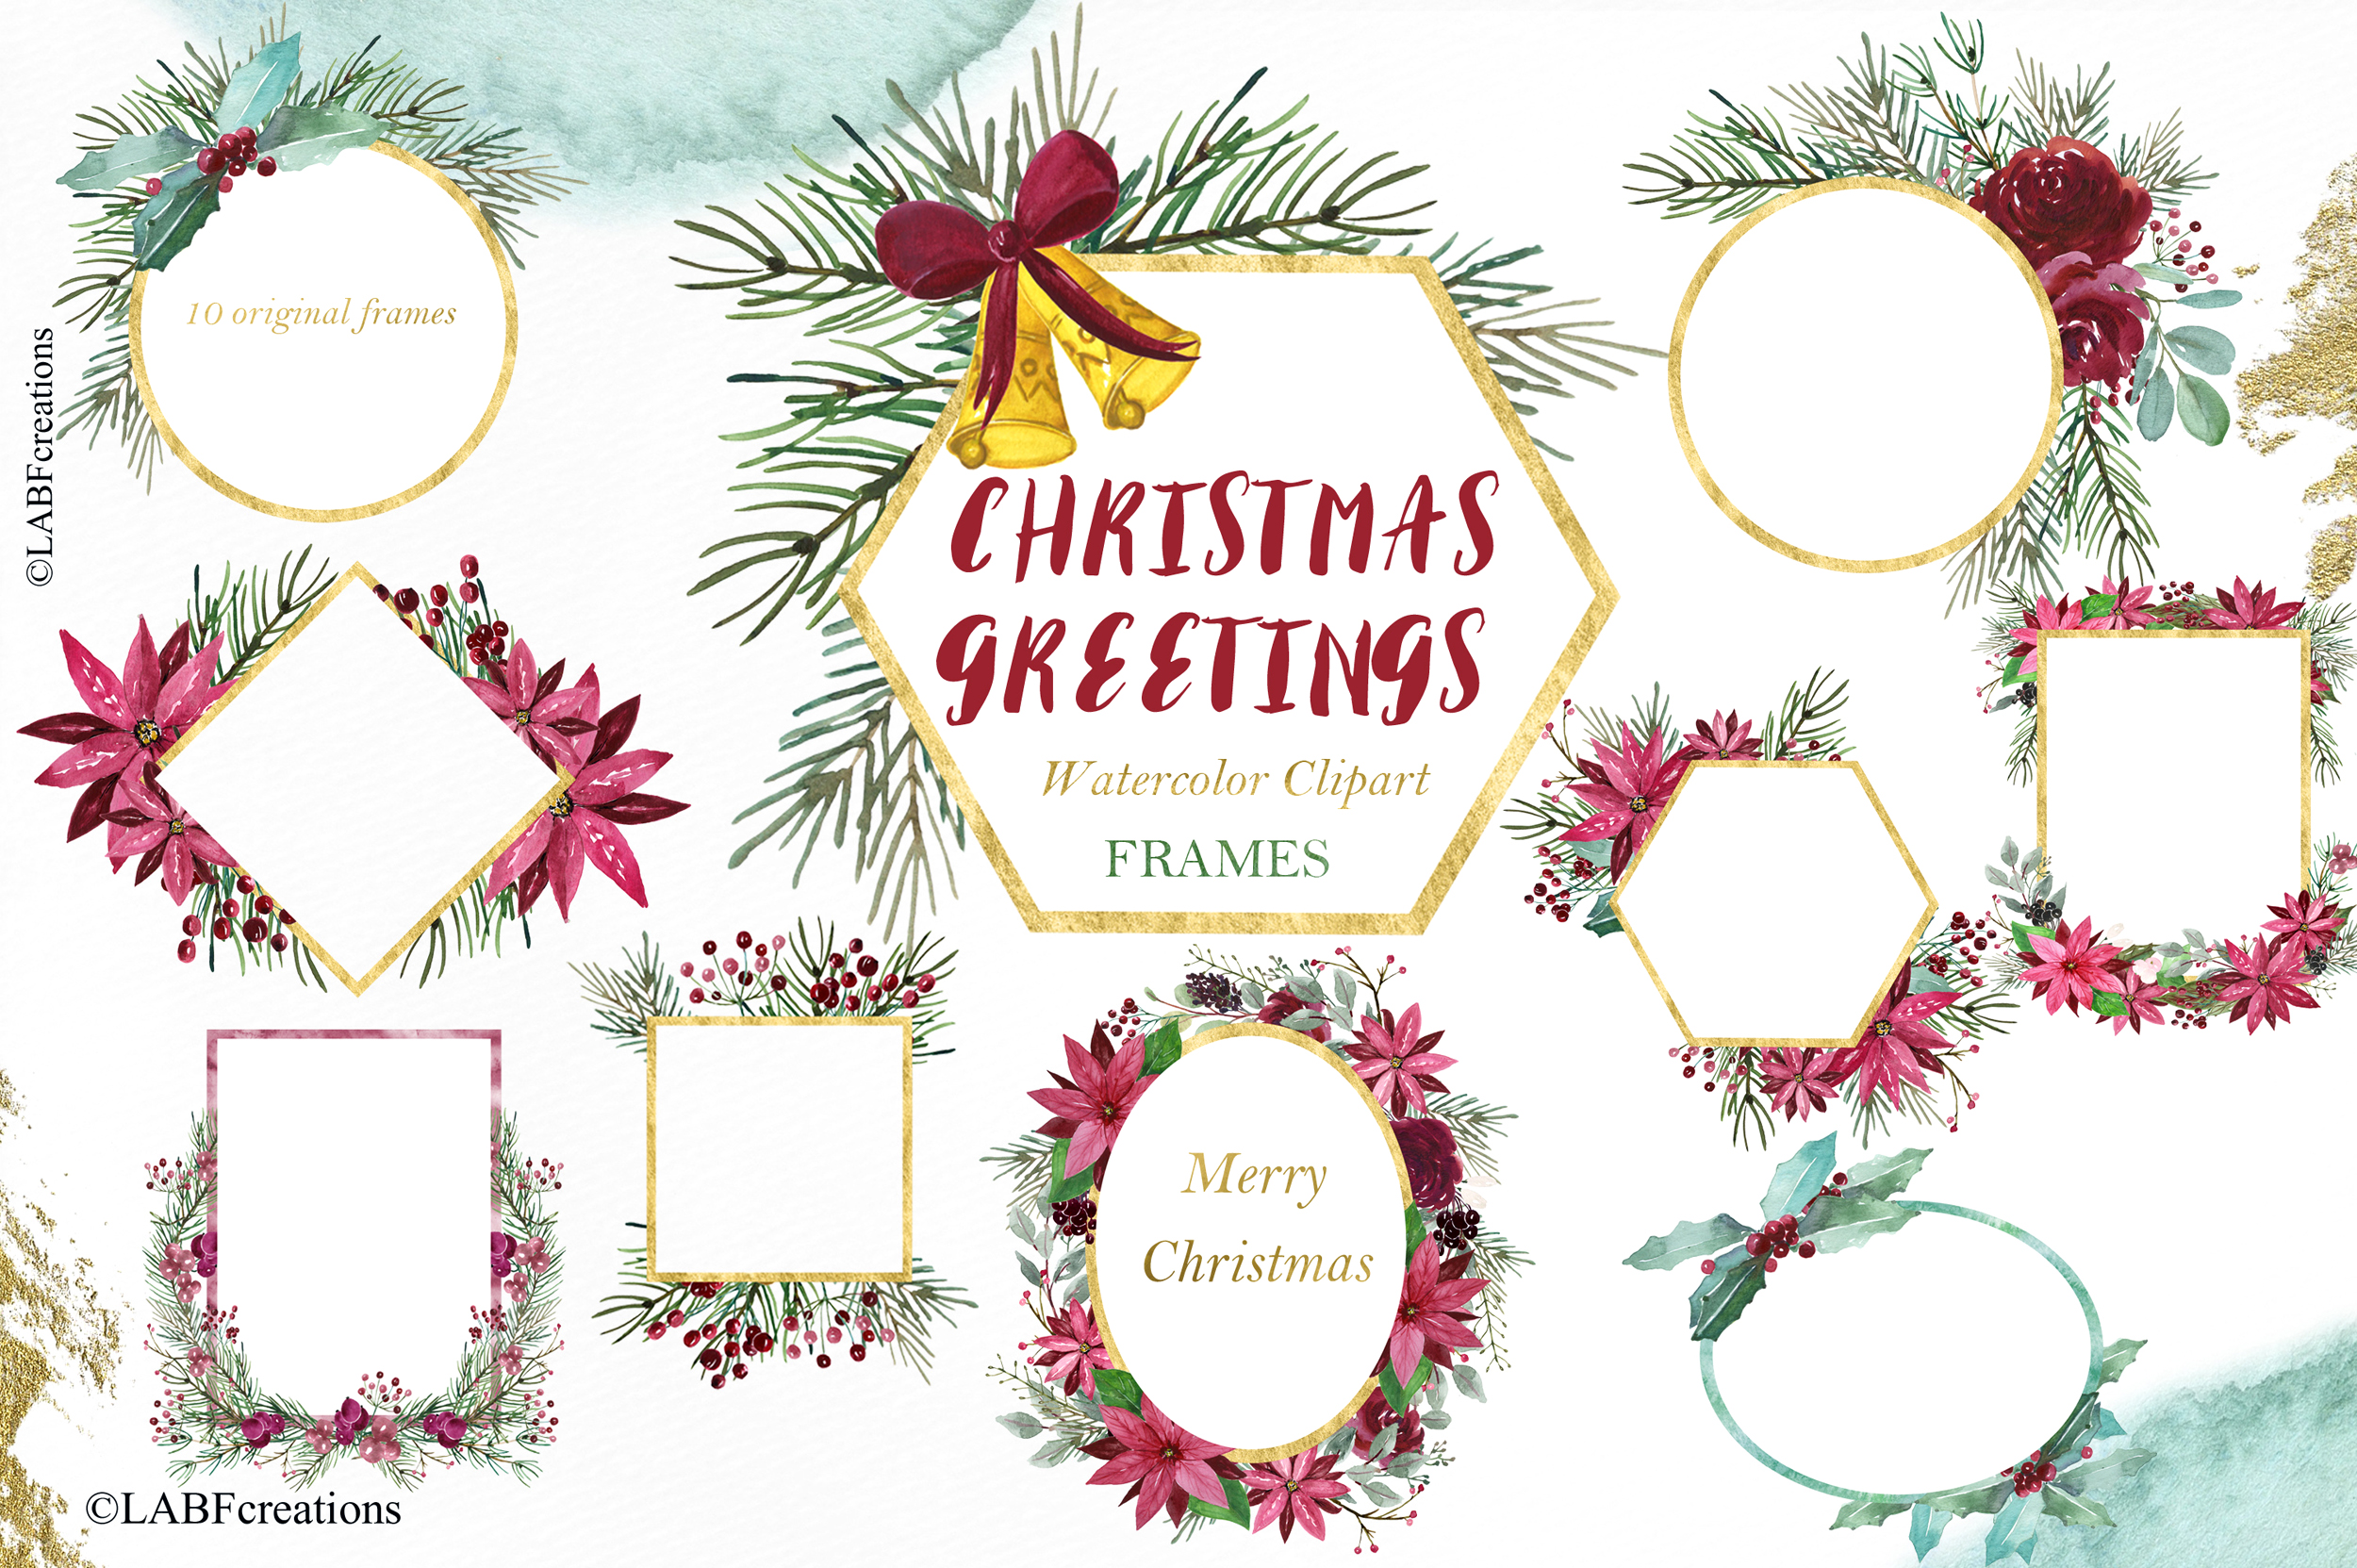 Christmas greetings. Hand drawn watercolor collection. example image 6